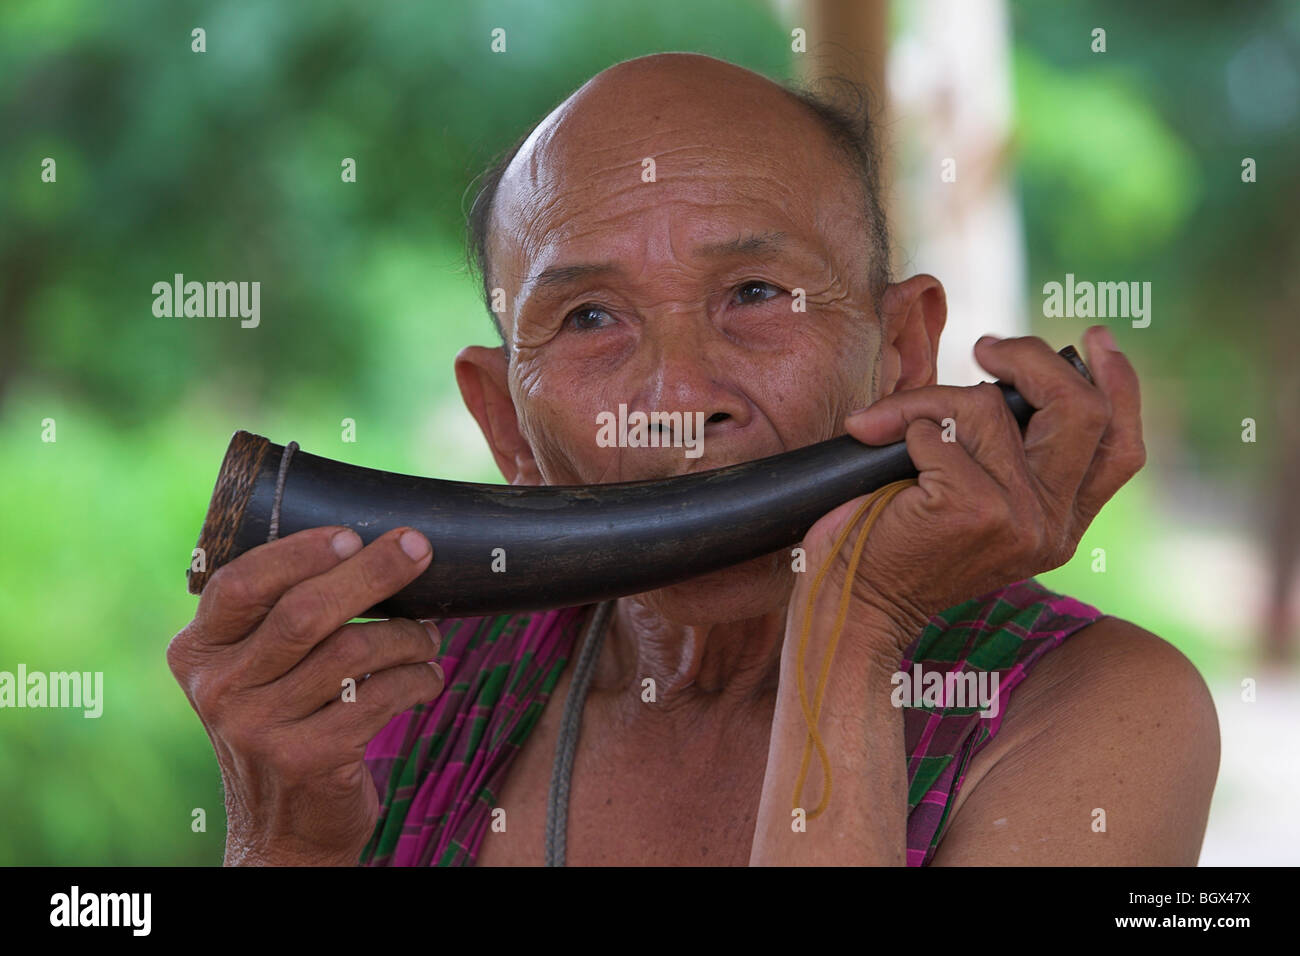 Man playing a horn - Stock Image